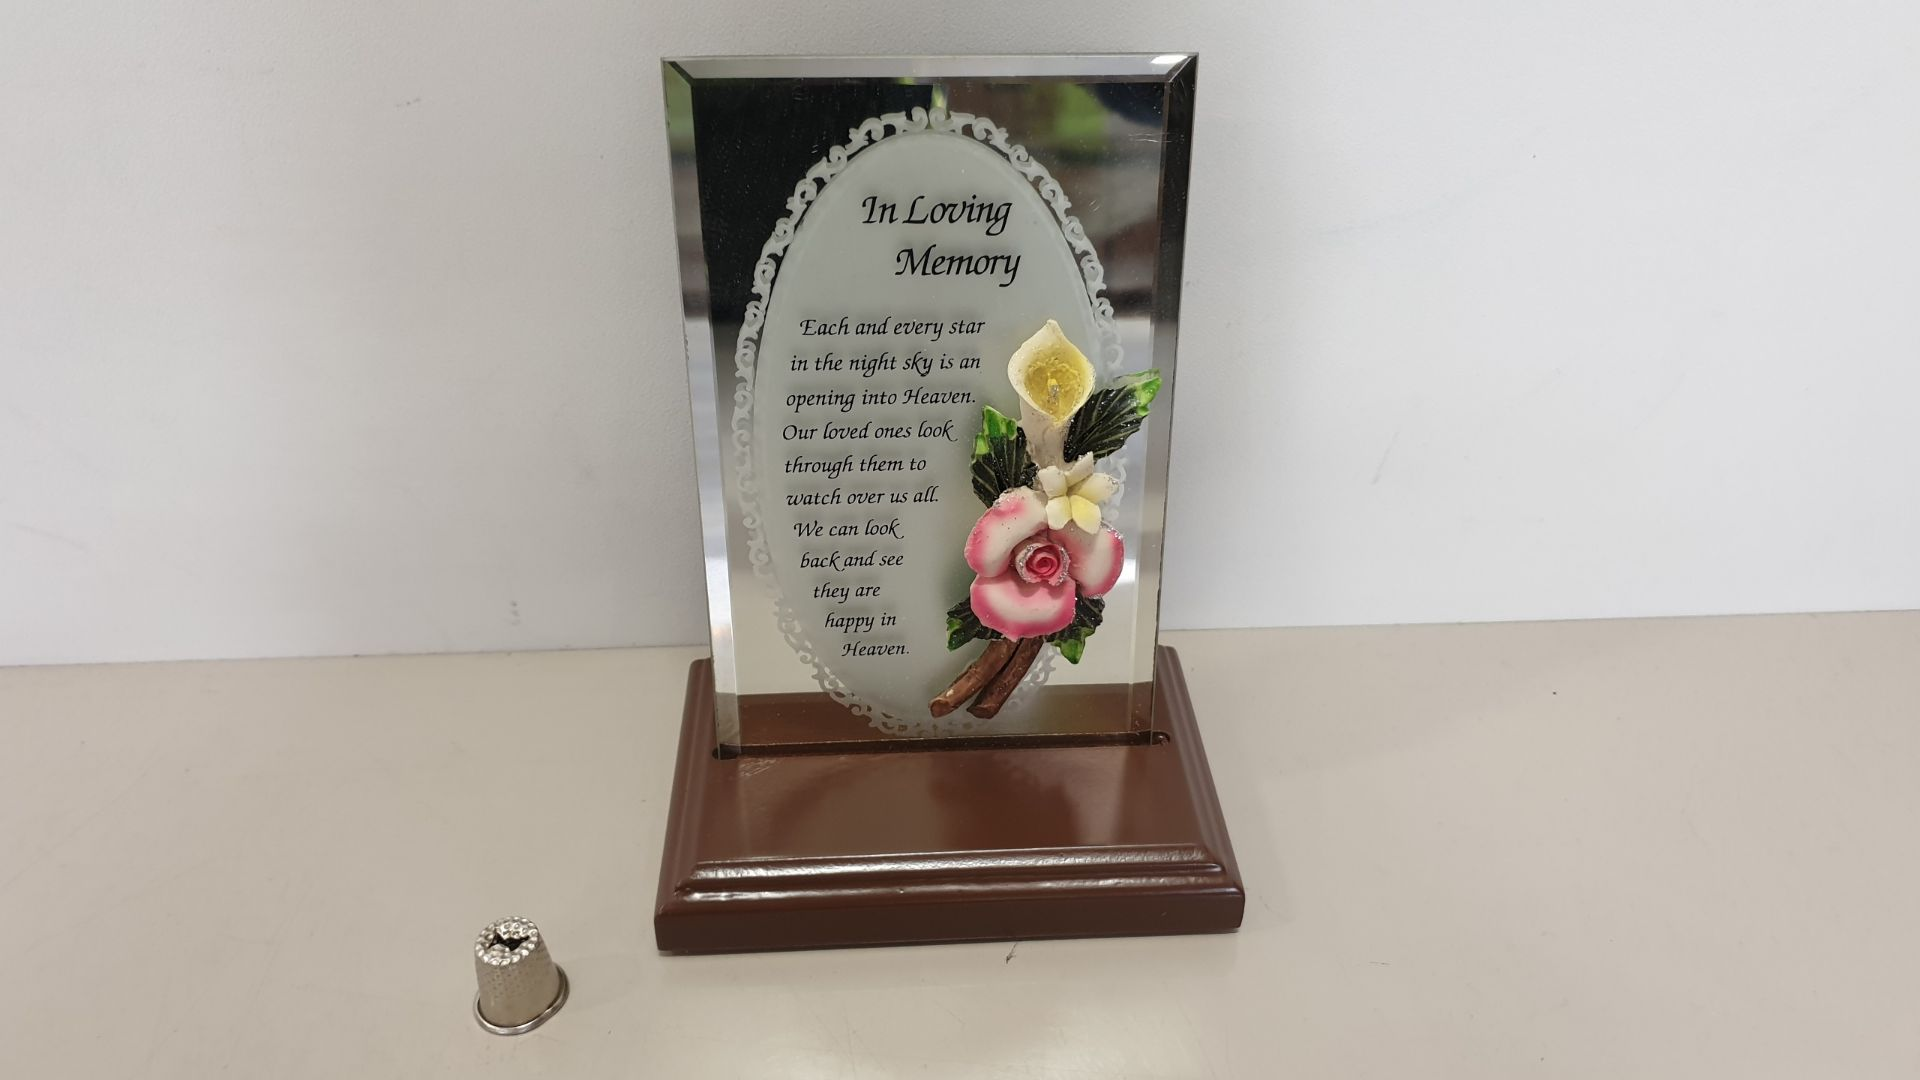 Lot 611 - 108 X BRAND NEW MAYFLOWER COLLECTABLES 'IN LOVING MEMORY' MIRRORED MESSAGE - 4 BOXES AND 12 LOOSE